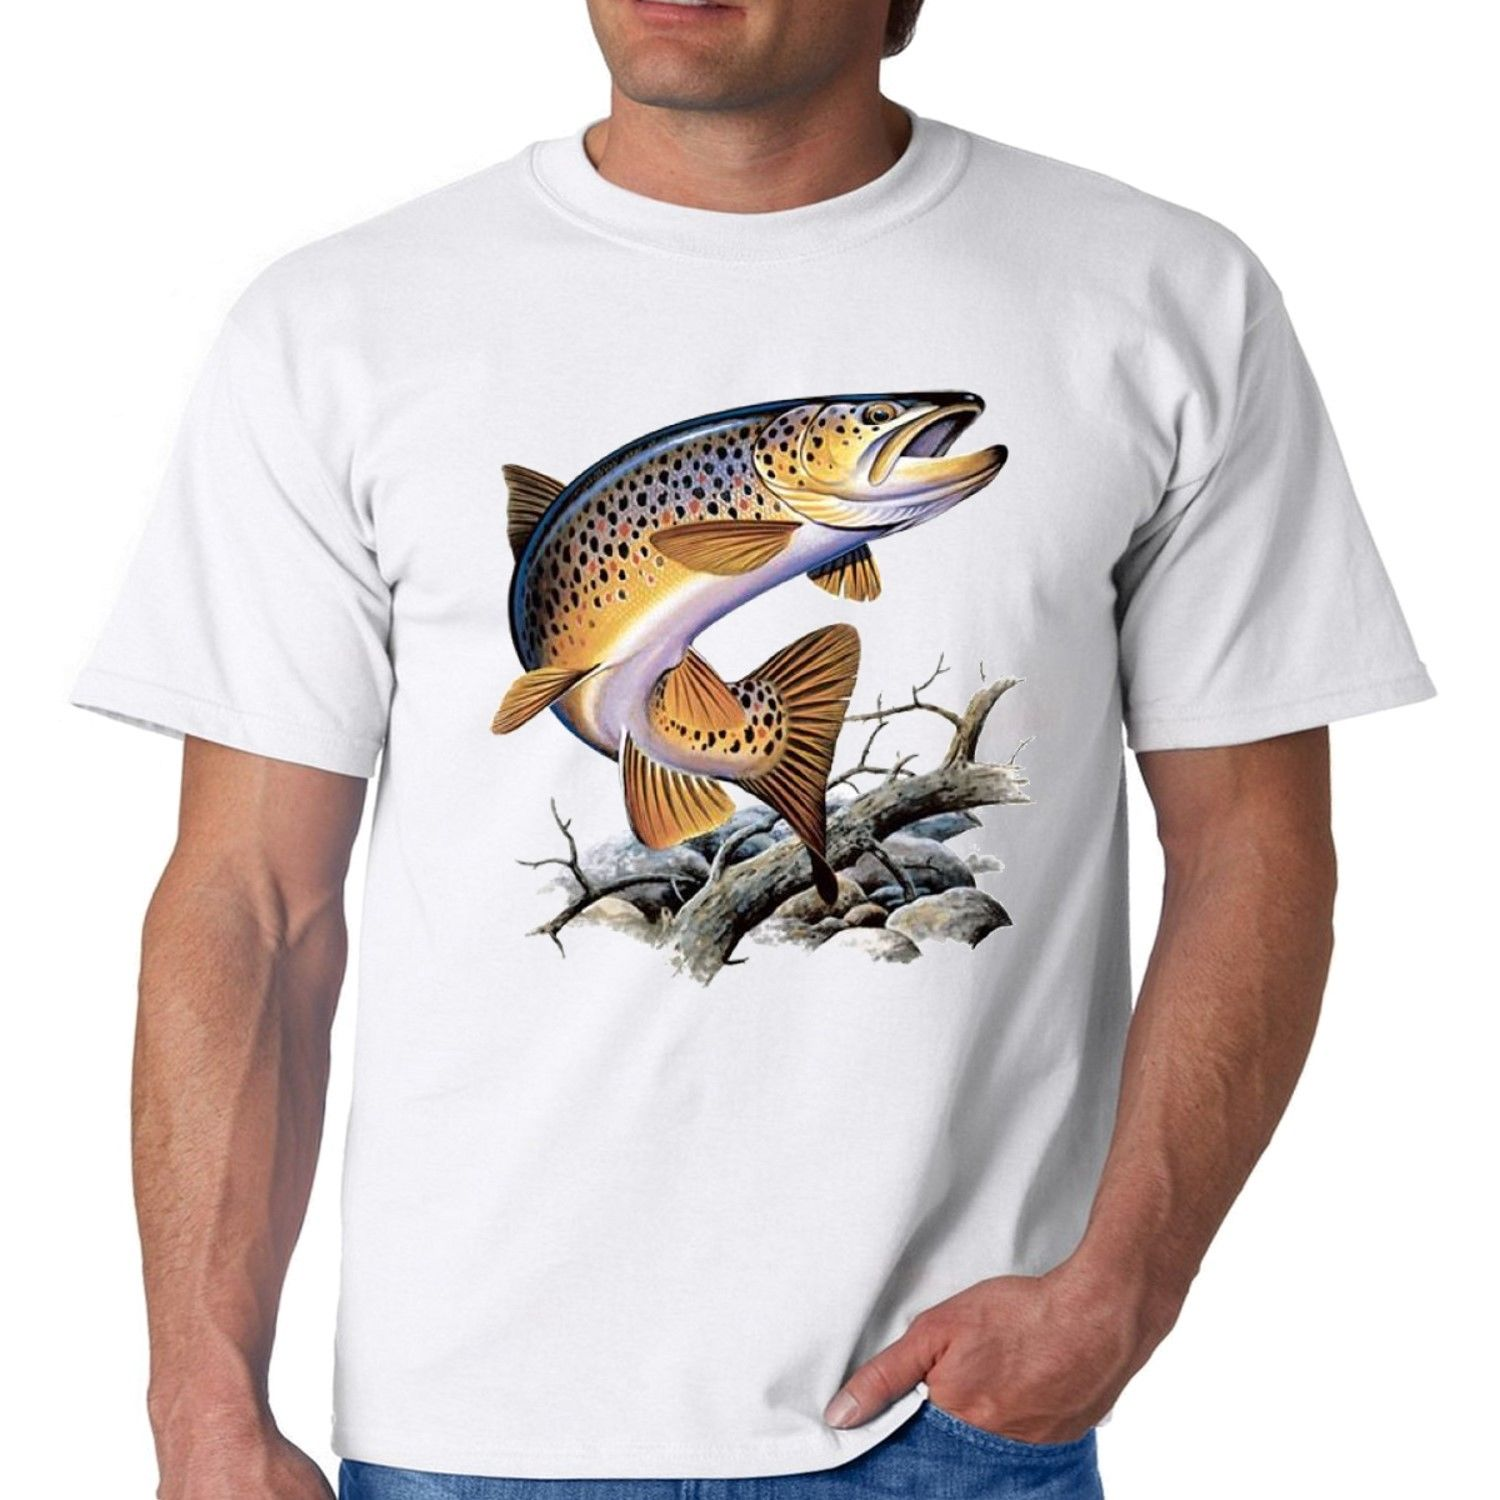 Brown Trout Fishing T-Shirt Cool Casual Pride T Shirt Men Unisex New Fashion Tshirt Free Shipping Tops Ajax 2018 Funny T Shirts